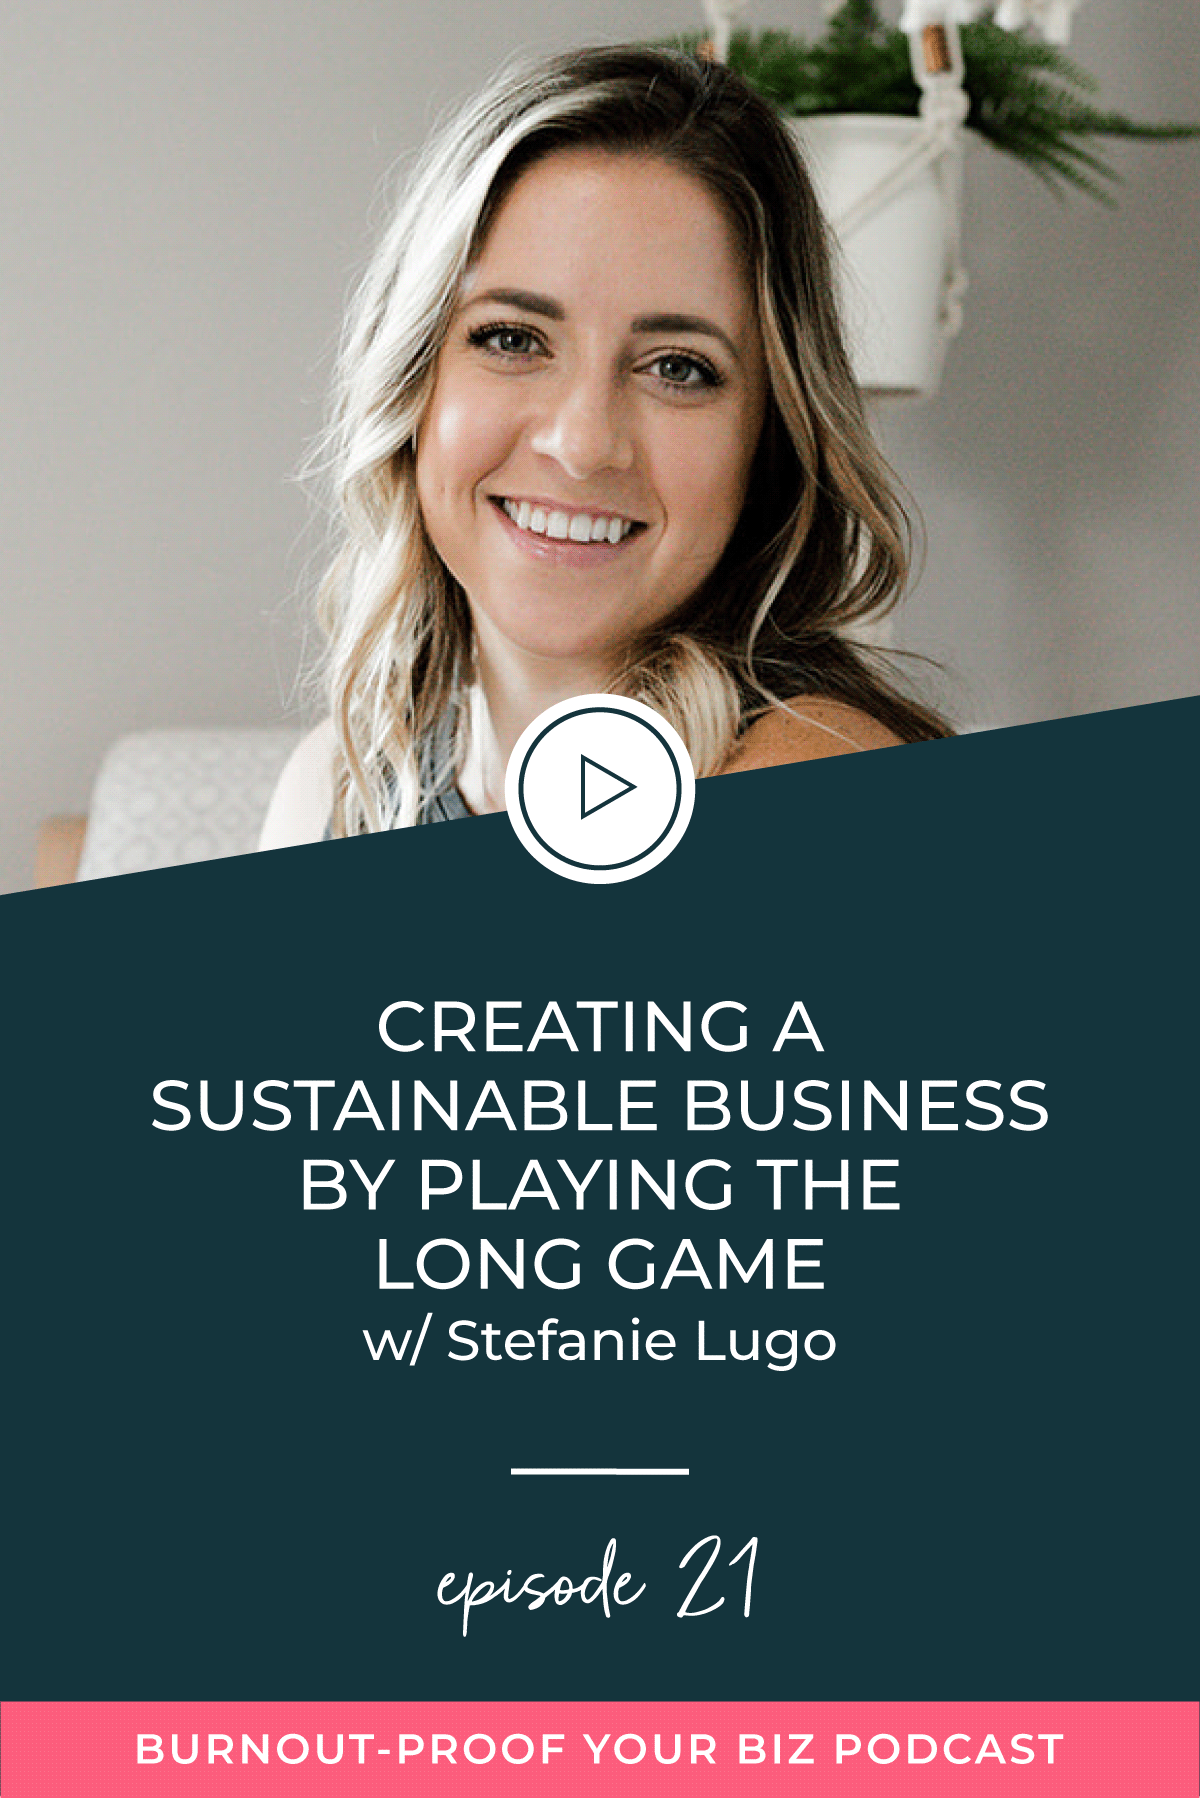 Burnout-Proof Your Biz Podcast with Chelsea B Foster | Episode 021 - Creating a Sustainable Business by Playing the Long Game with Stefanie Lugo | Learn how to run your biz and live your dream life on your own terms without the fear of burnout.